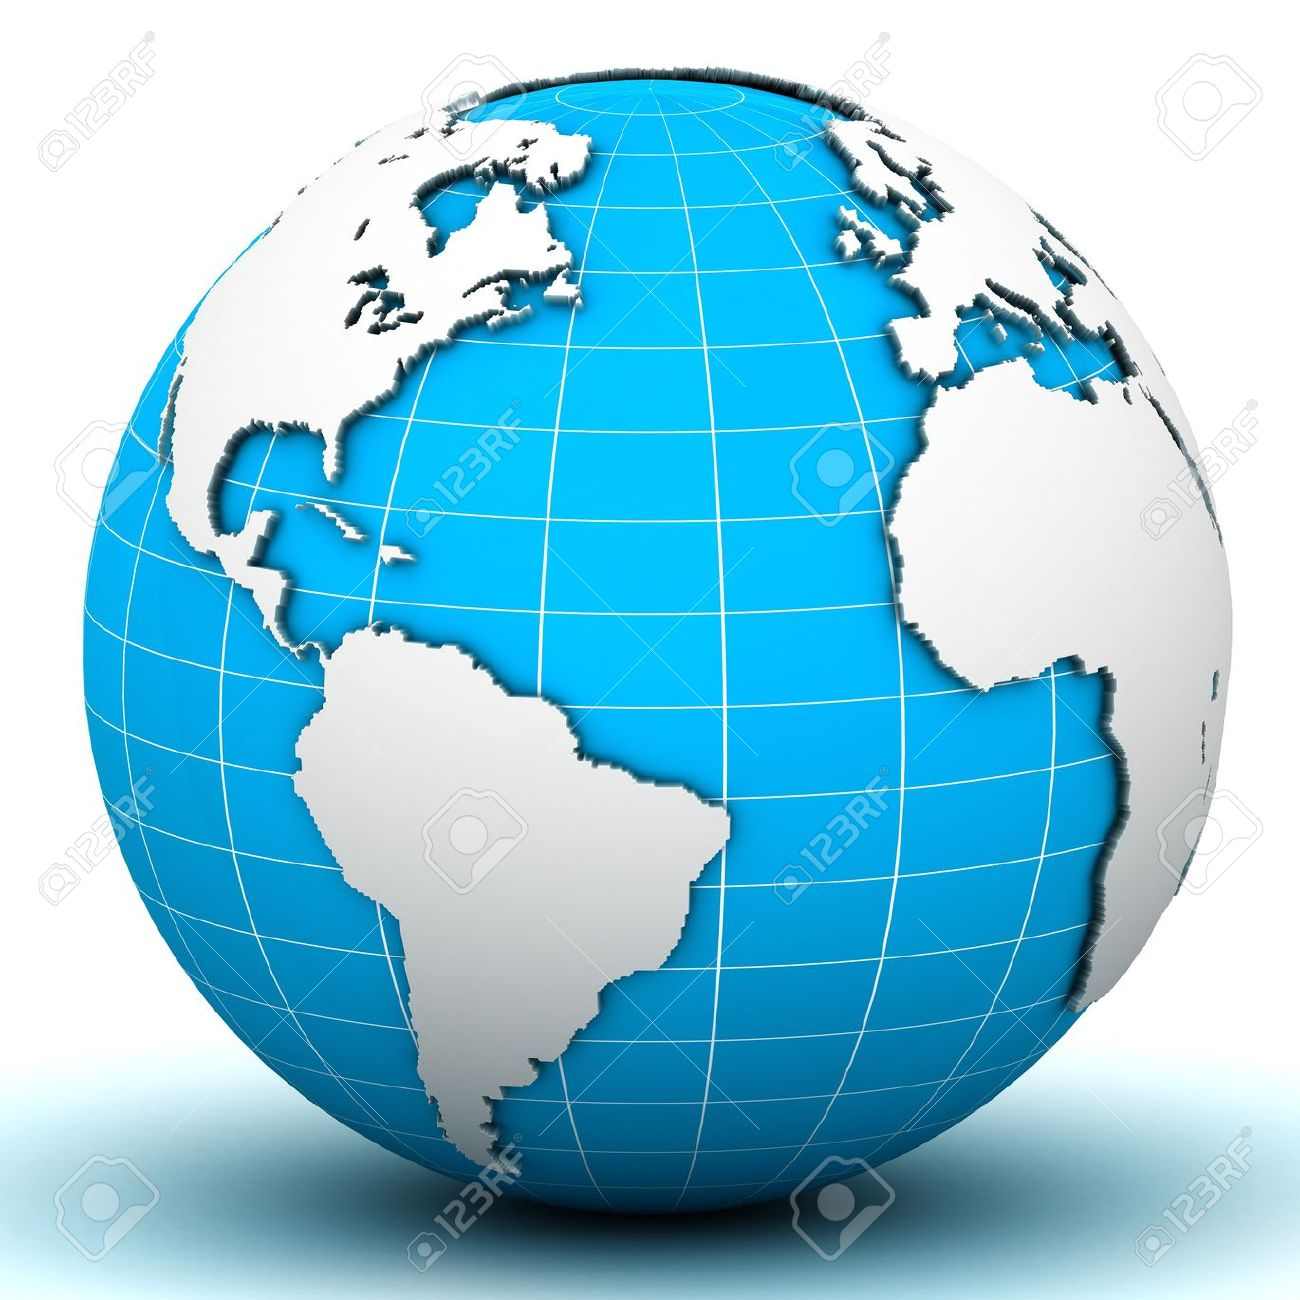 World globe map stock photo picture and royalty free image image stock photo world globe map gumiabroncs Gallery